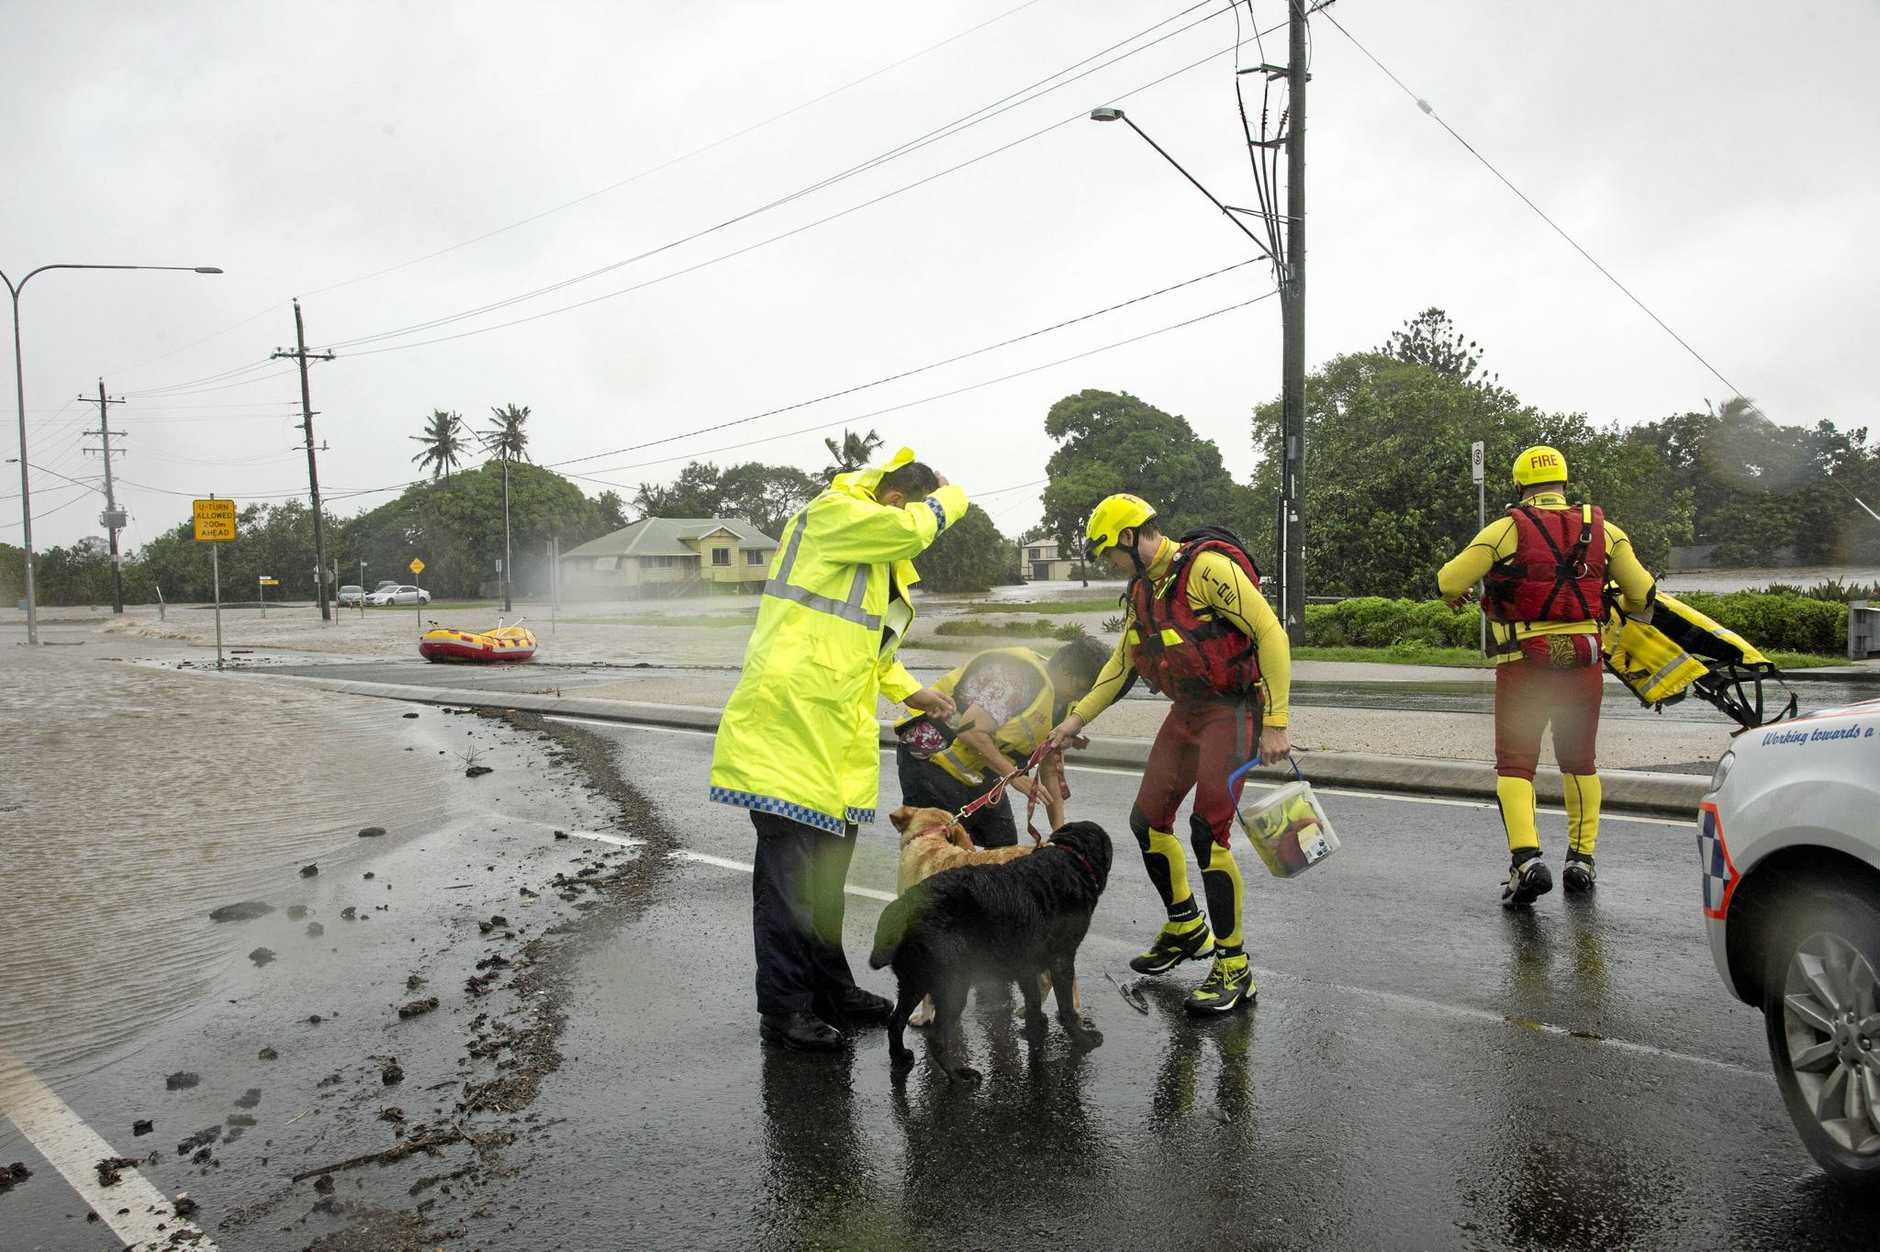 Palm St Resident Cathy Seiver, her dogs, And elderly mother, (already transported by Police), Assisted out of her street by QFES Swift water Rescue team members in Mackay, after tropical cyclone Debbie hit the north Queensland region, Wednesday, March 29, 2017. There are fears hundreds of homes and businesses have been damaged by ex-tropical cyclone Debbie after it hit north Queensland with ferocious winds and driving rain. (AAP Image/Daryl Wright) NO ARCHIVING